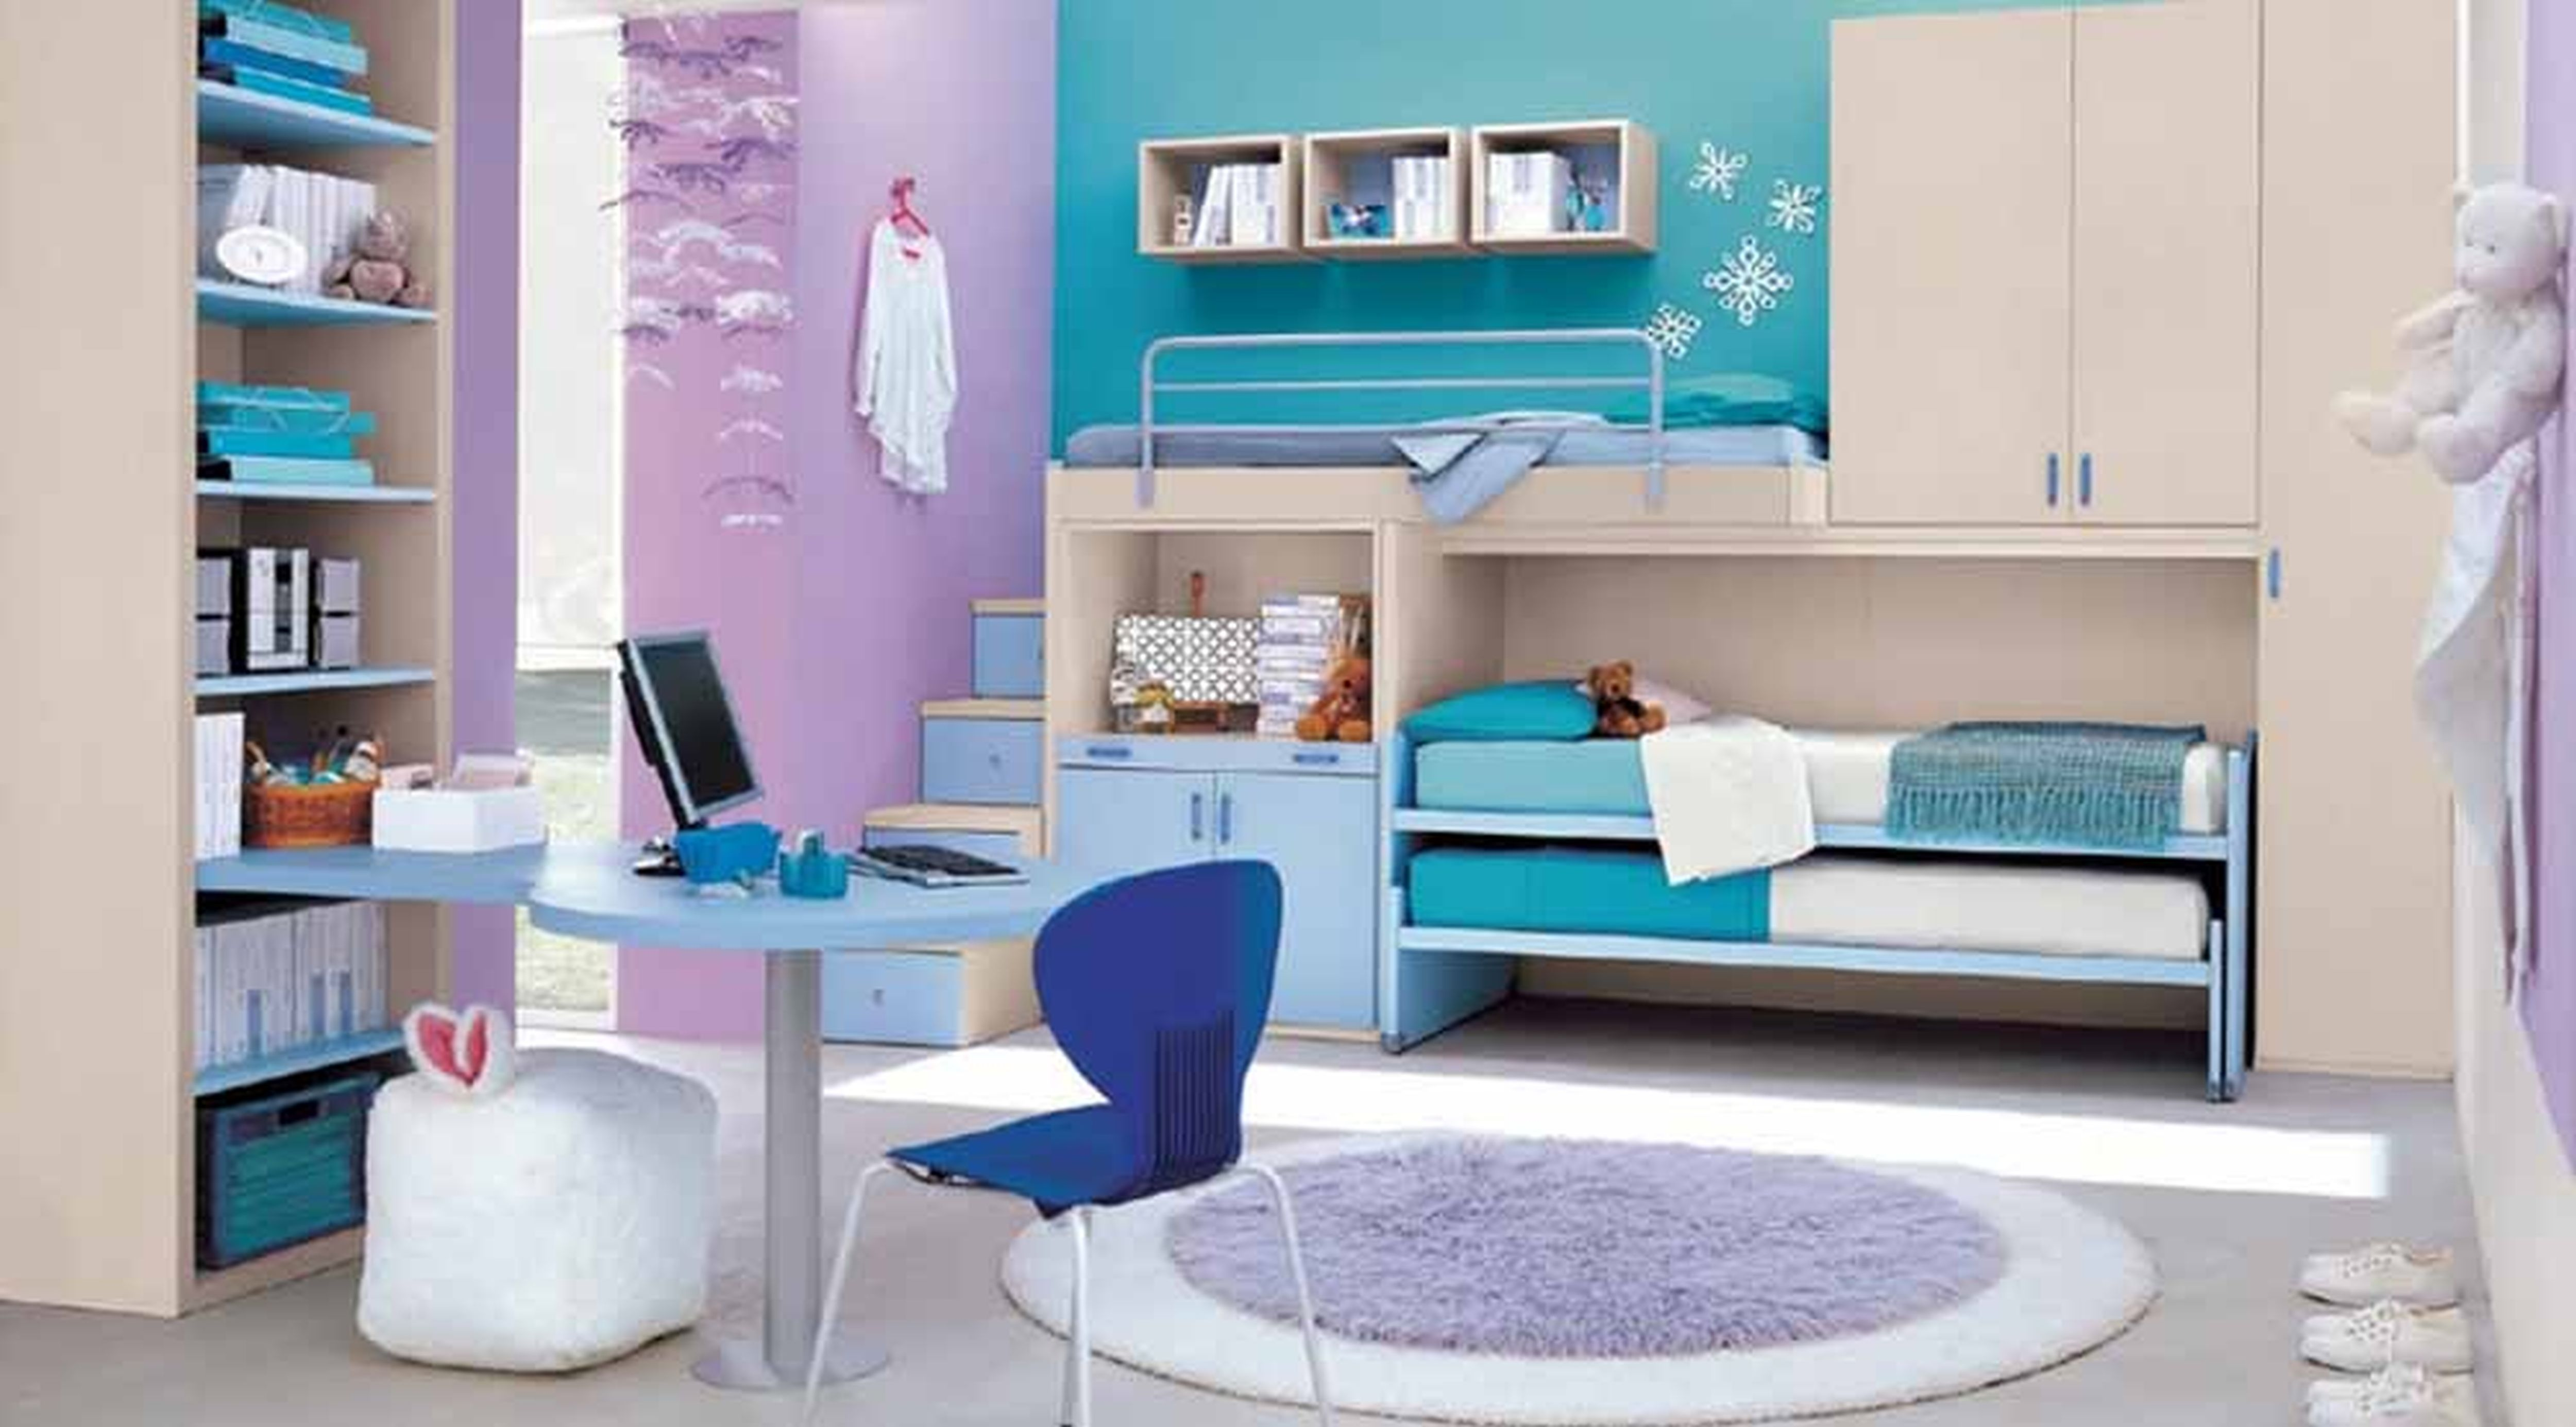 Bedroom, Amazing White Small Bedroom Blueprint Great Ikea And Chic Teenage  Bedrooms For Girls And Boys Transitional Style Designs Ideas: Fabulous Boys  ...